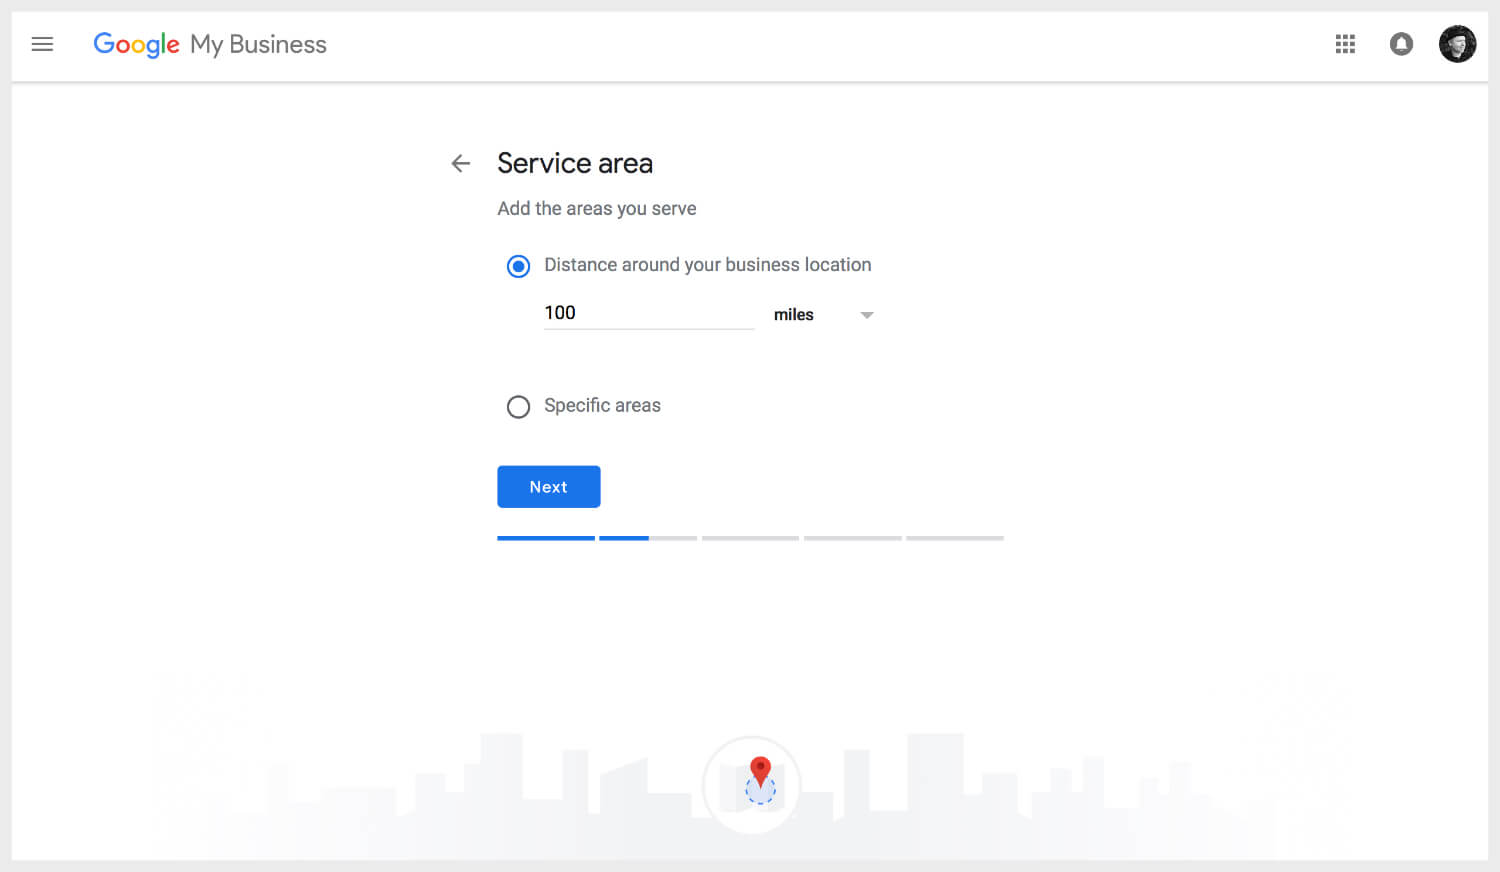 Adding service area on Google My Business